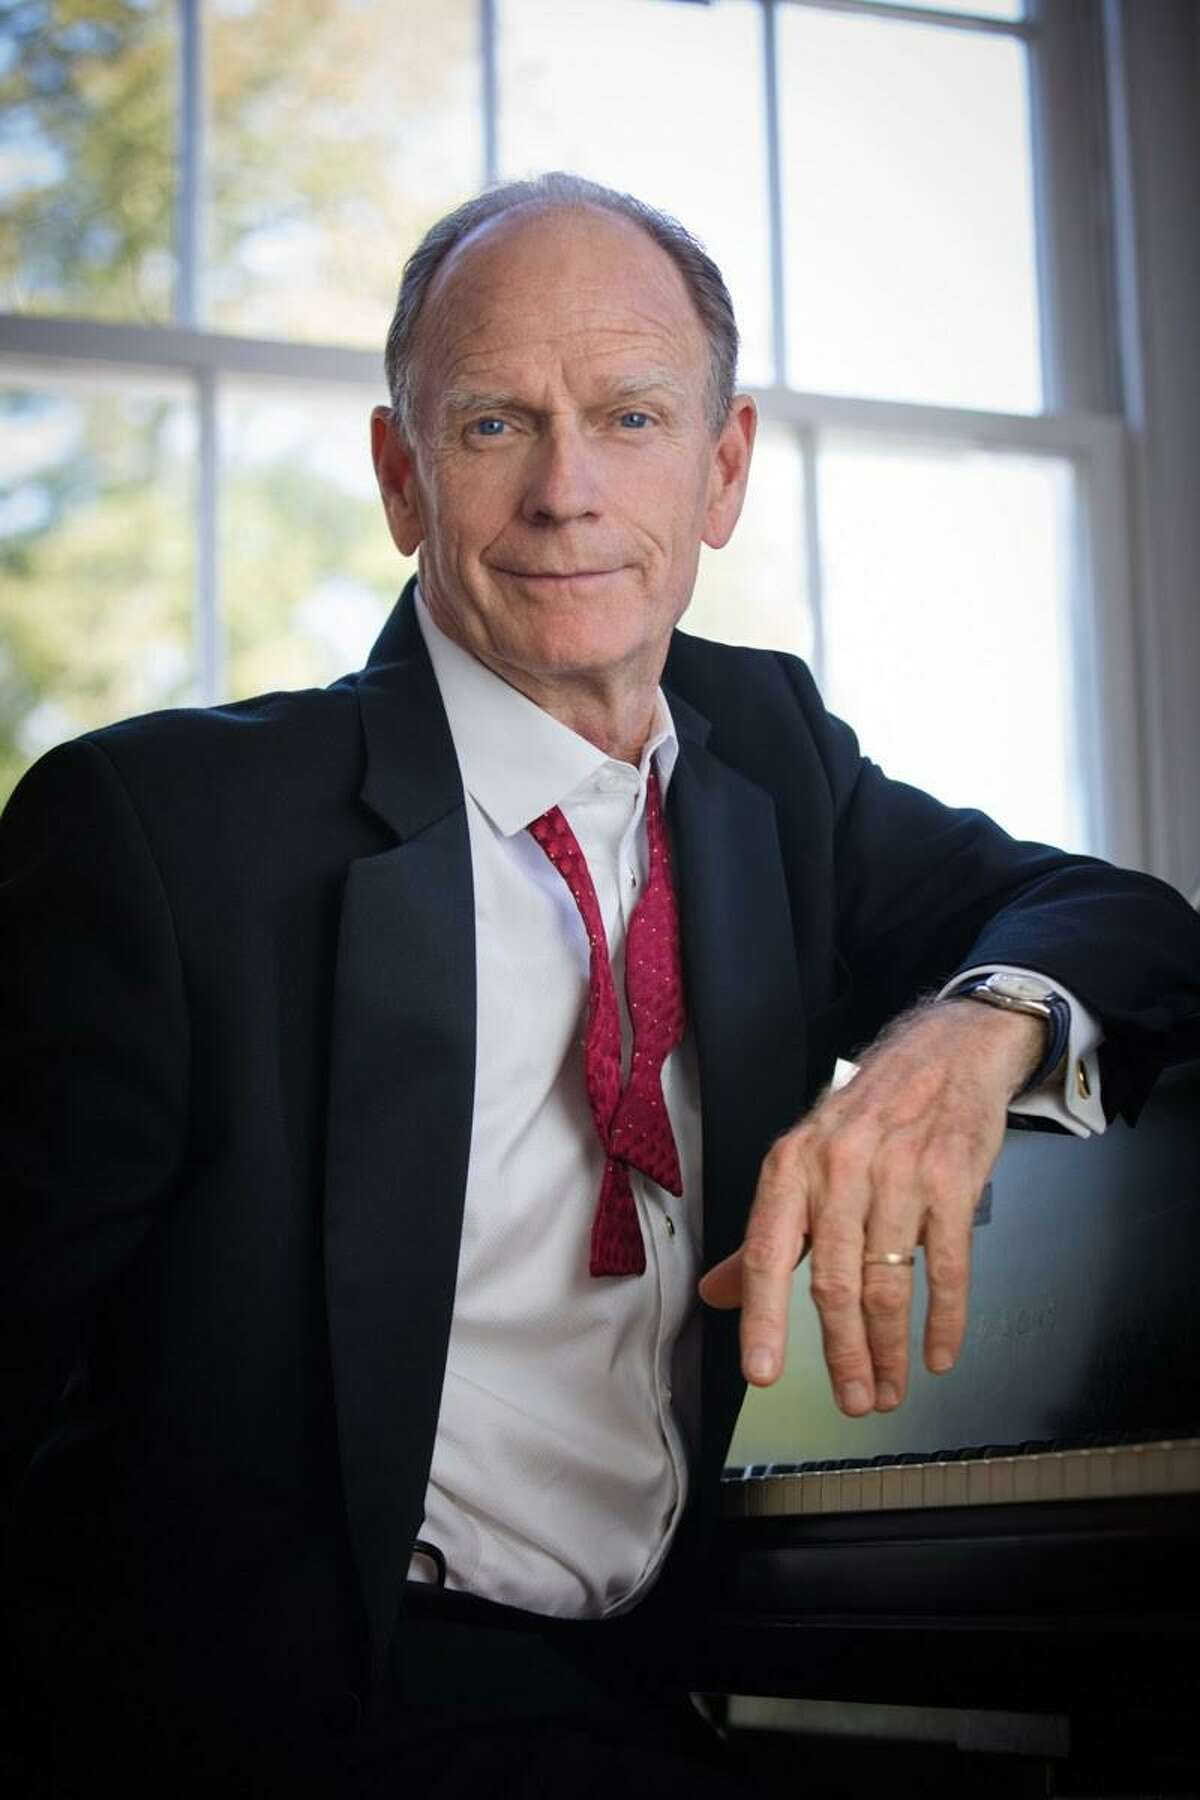 Livingston Taylor will perfrom on Nov. 21 at 8 p.m. at the Ridgefield Playhouse.